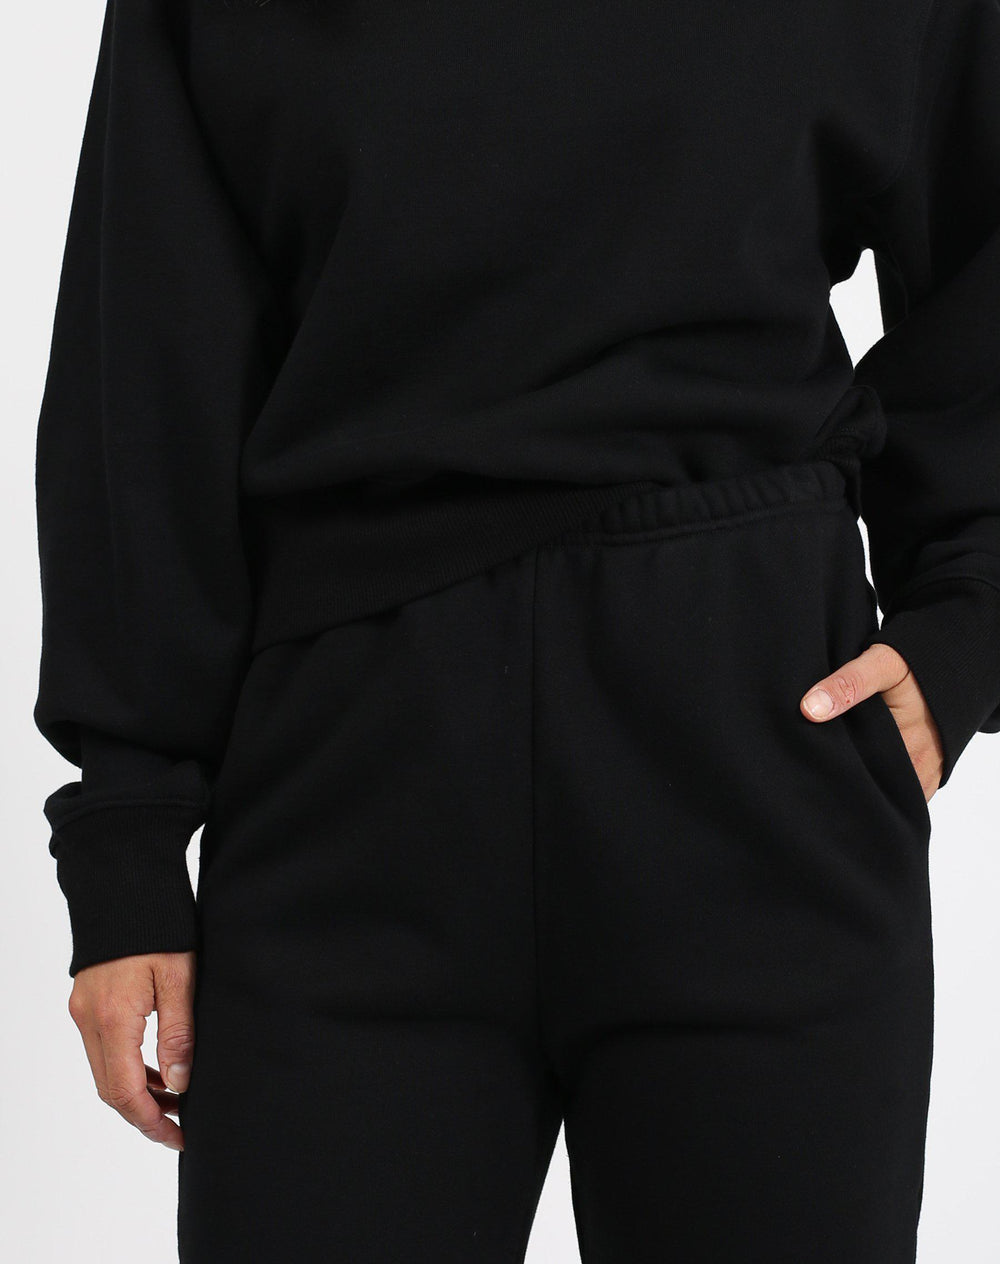 Brunette the Label Best Friend High Rise Jogger in Black-The Trendy Walrus